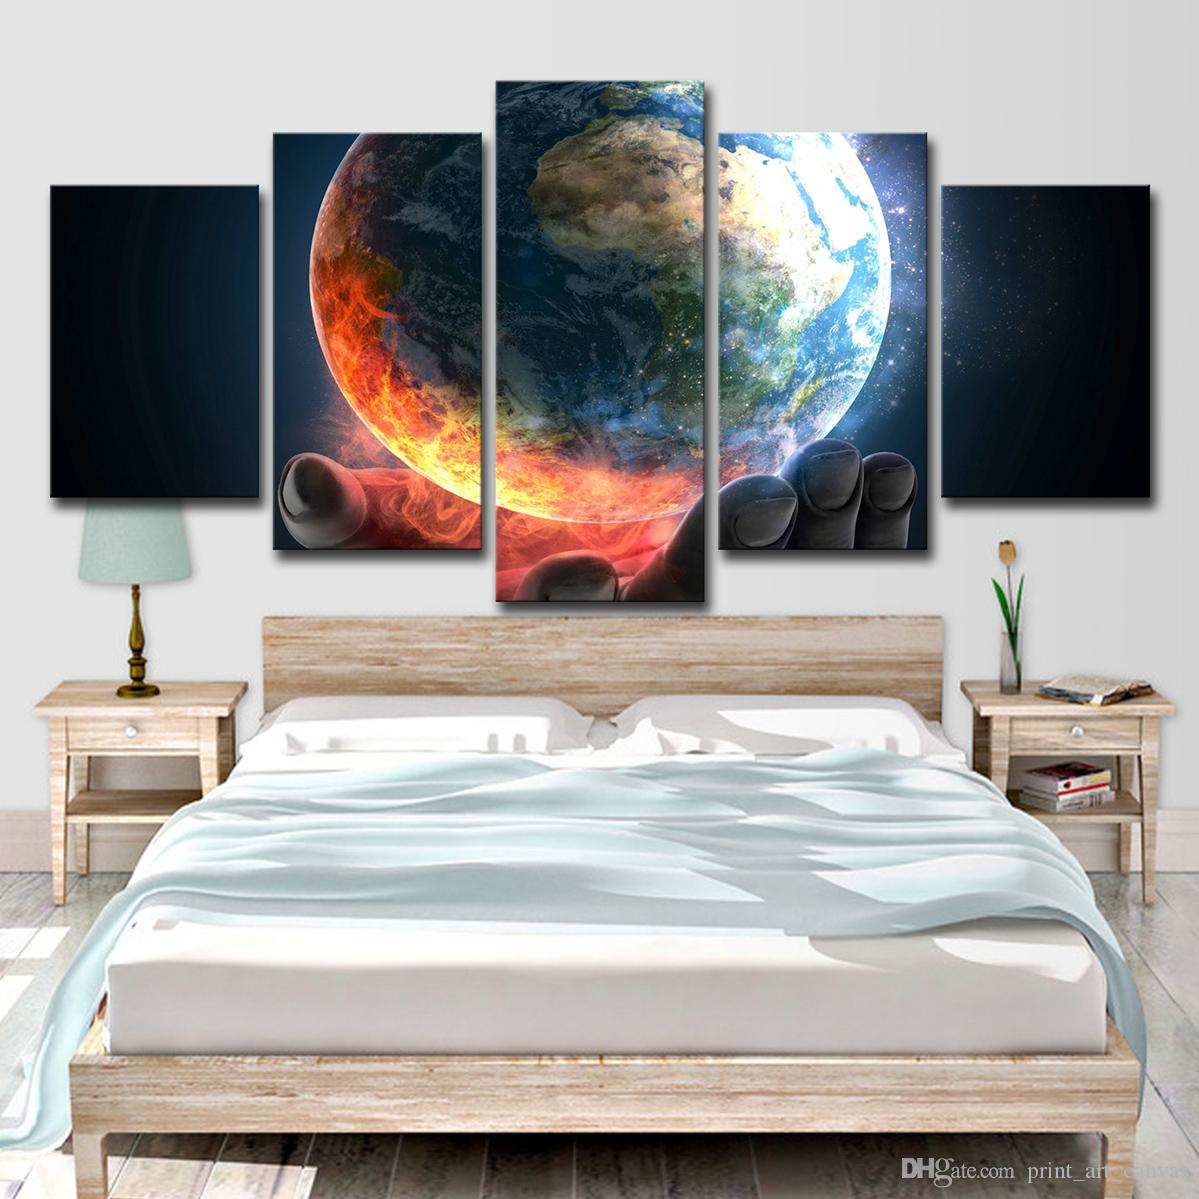 Canvas Wall Art Pictures For Living Room Home Decor 5 Pieces Earth Planet Scenery Paintings HD Prints Abstract Poster